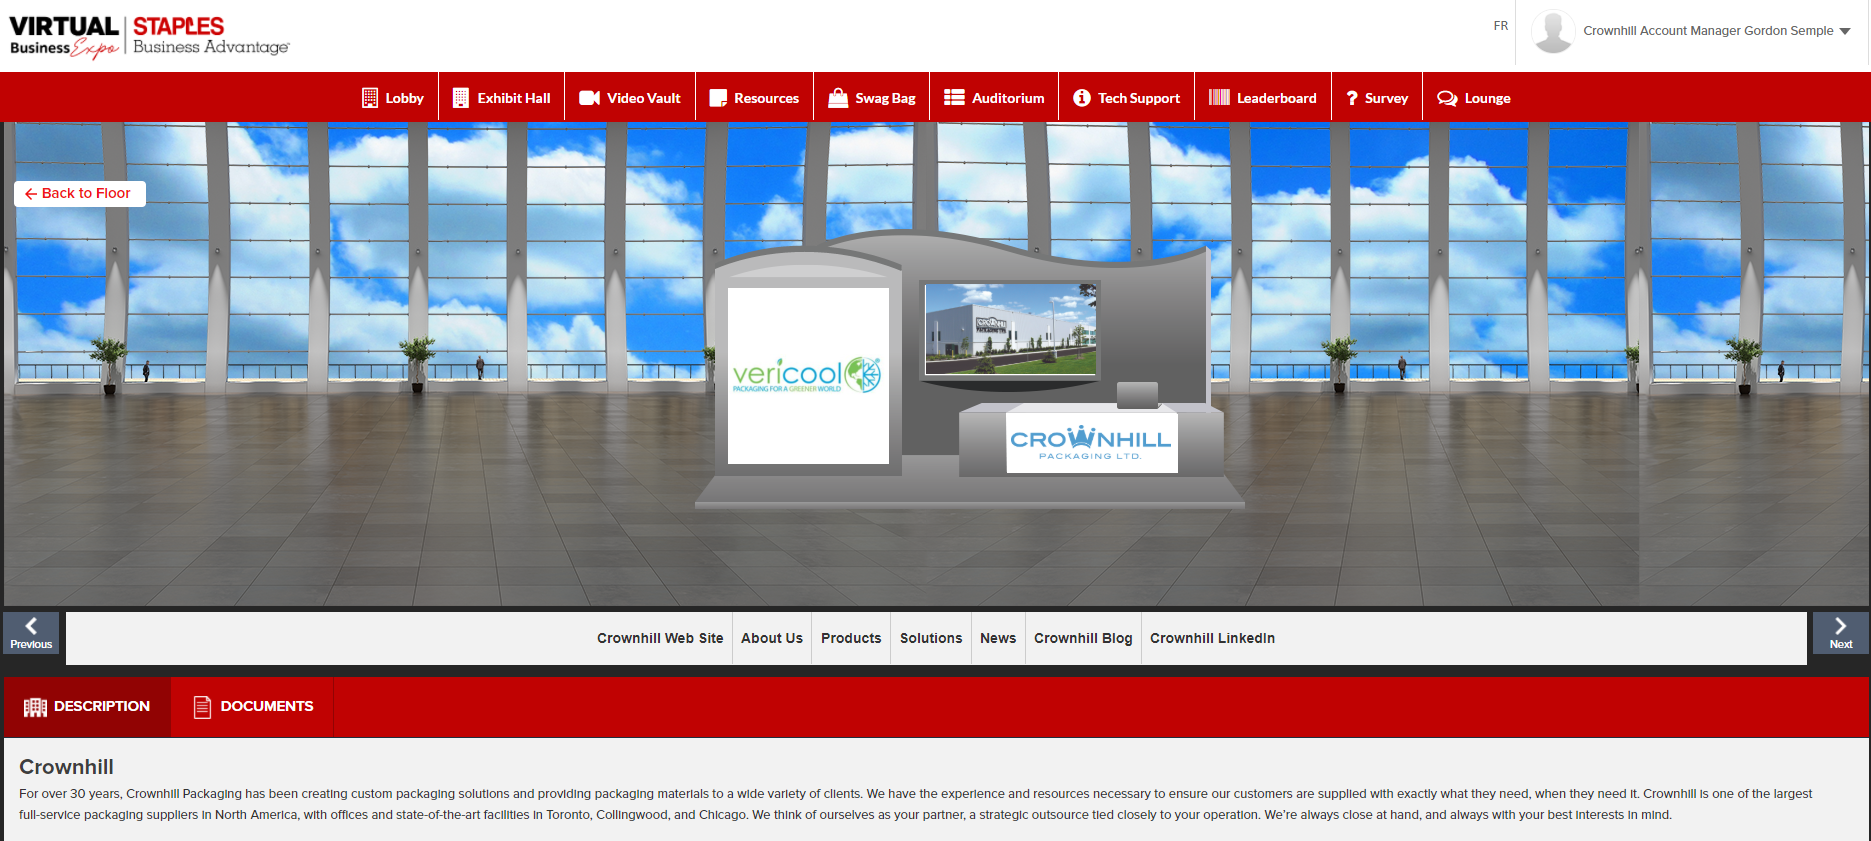 Crownhill-Packaging-Participates-in-Staples-Virtual-Business-Expo